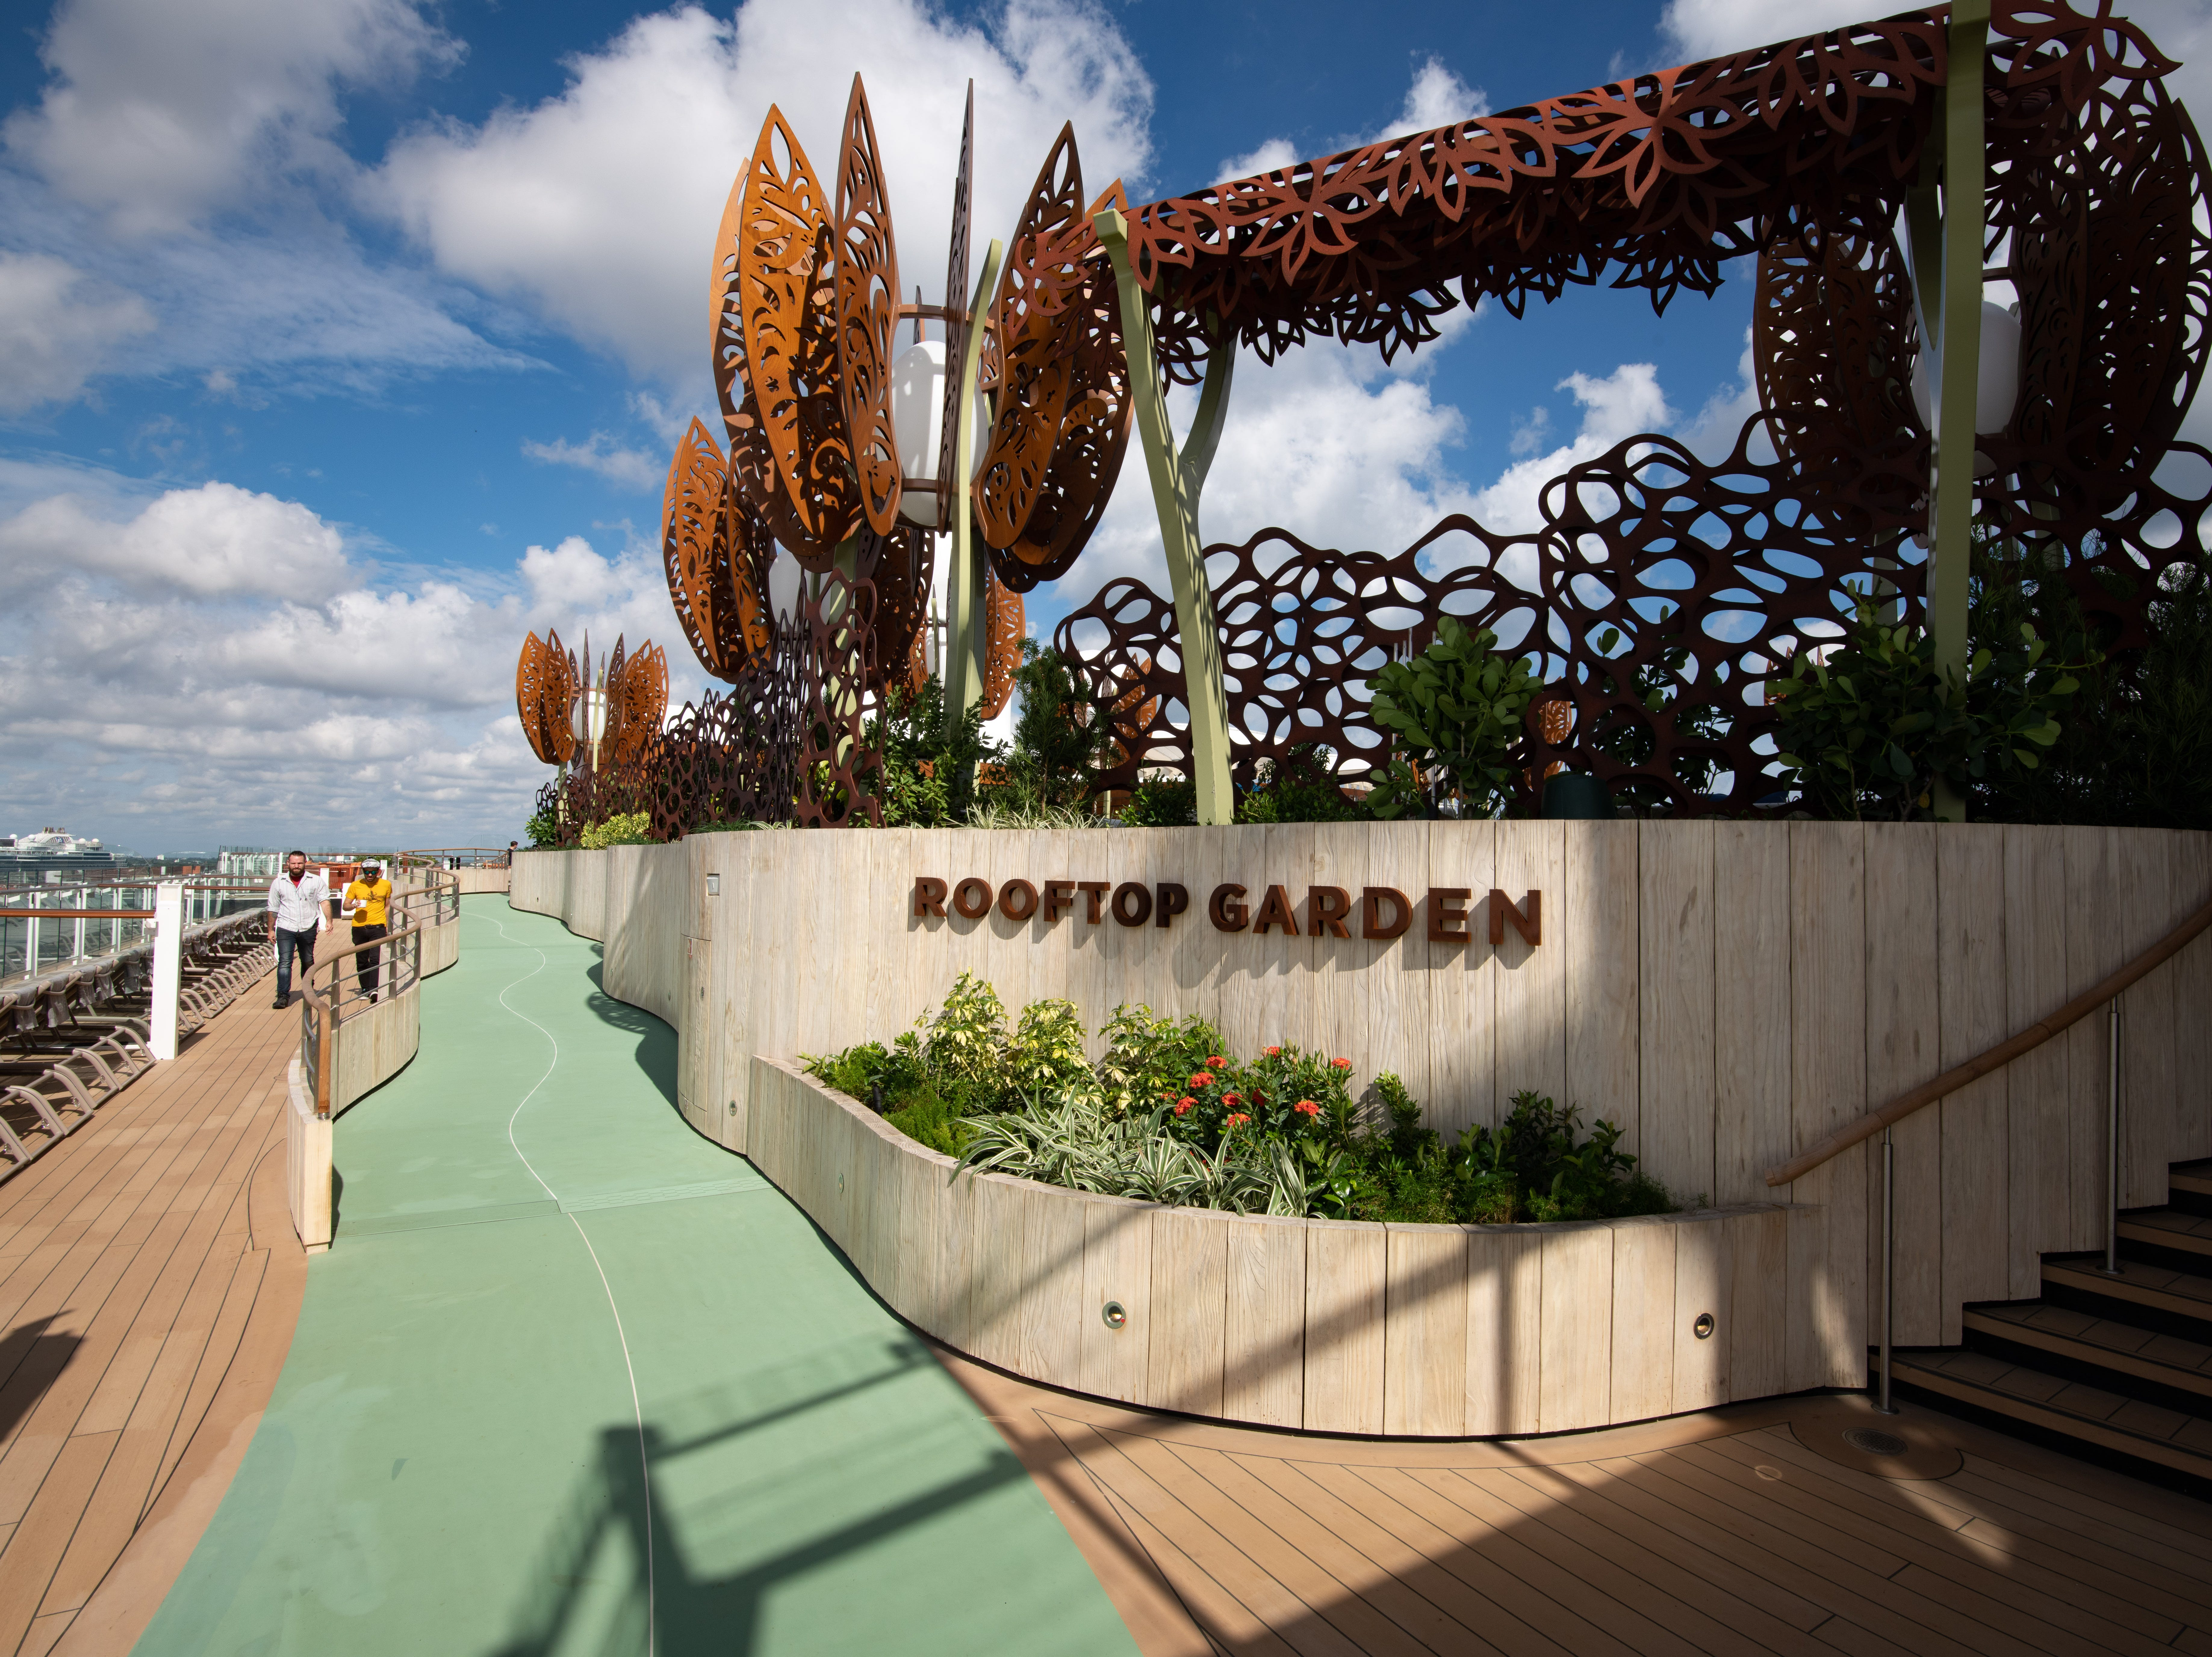 Another unusual feature of Celebrity Edge is its Rooftop Garden. It's a plant-filled playscape that Celebrity says was inspired by childhood playgrounds and 'designed to awaken the inner-child in everyone.'